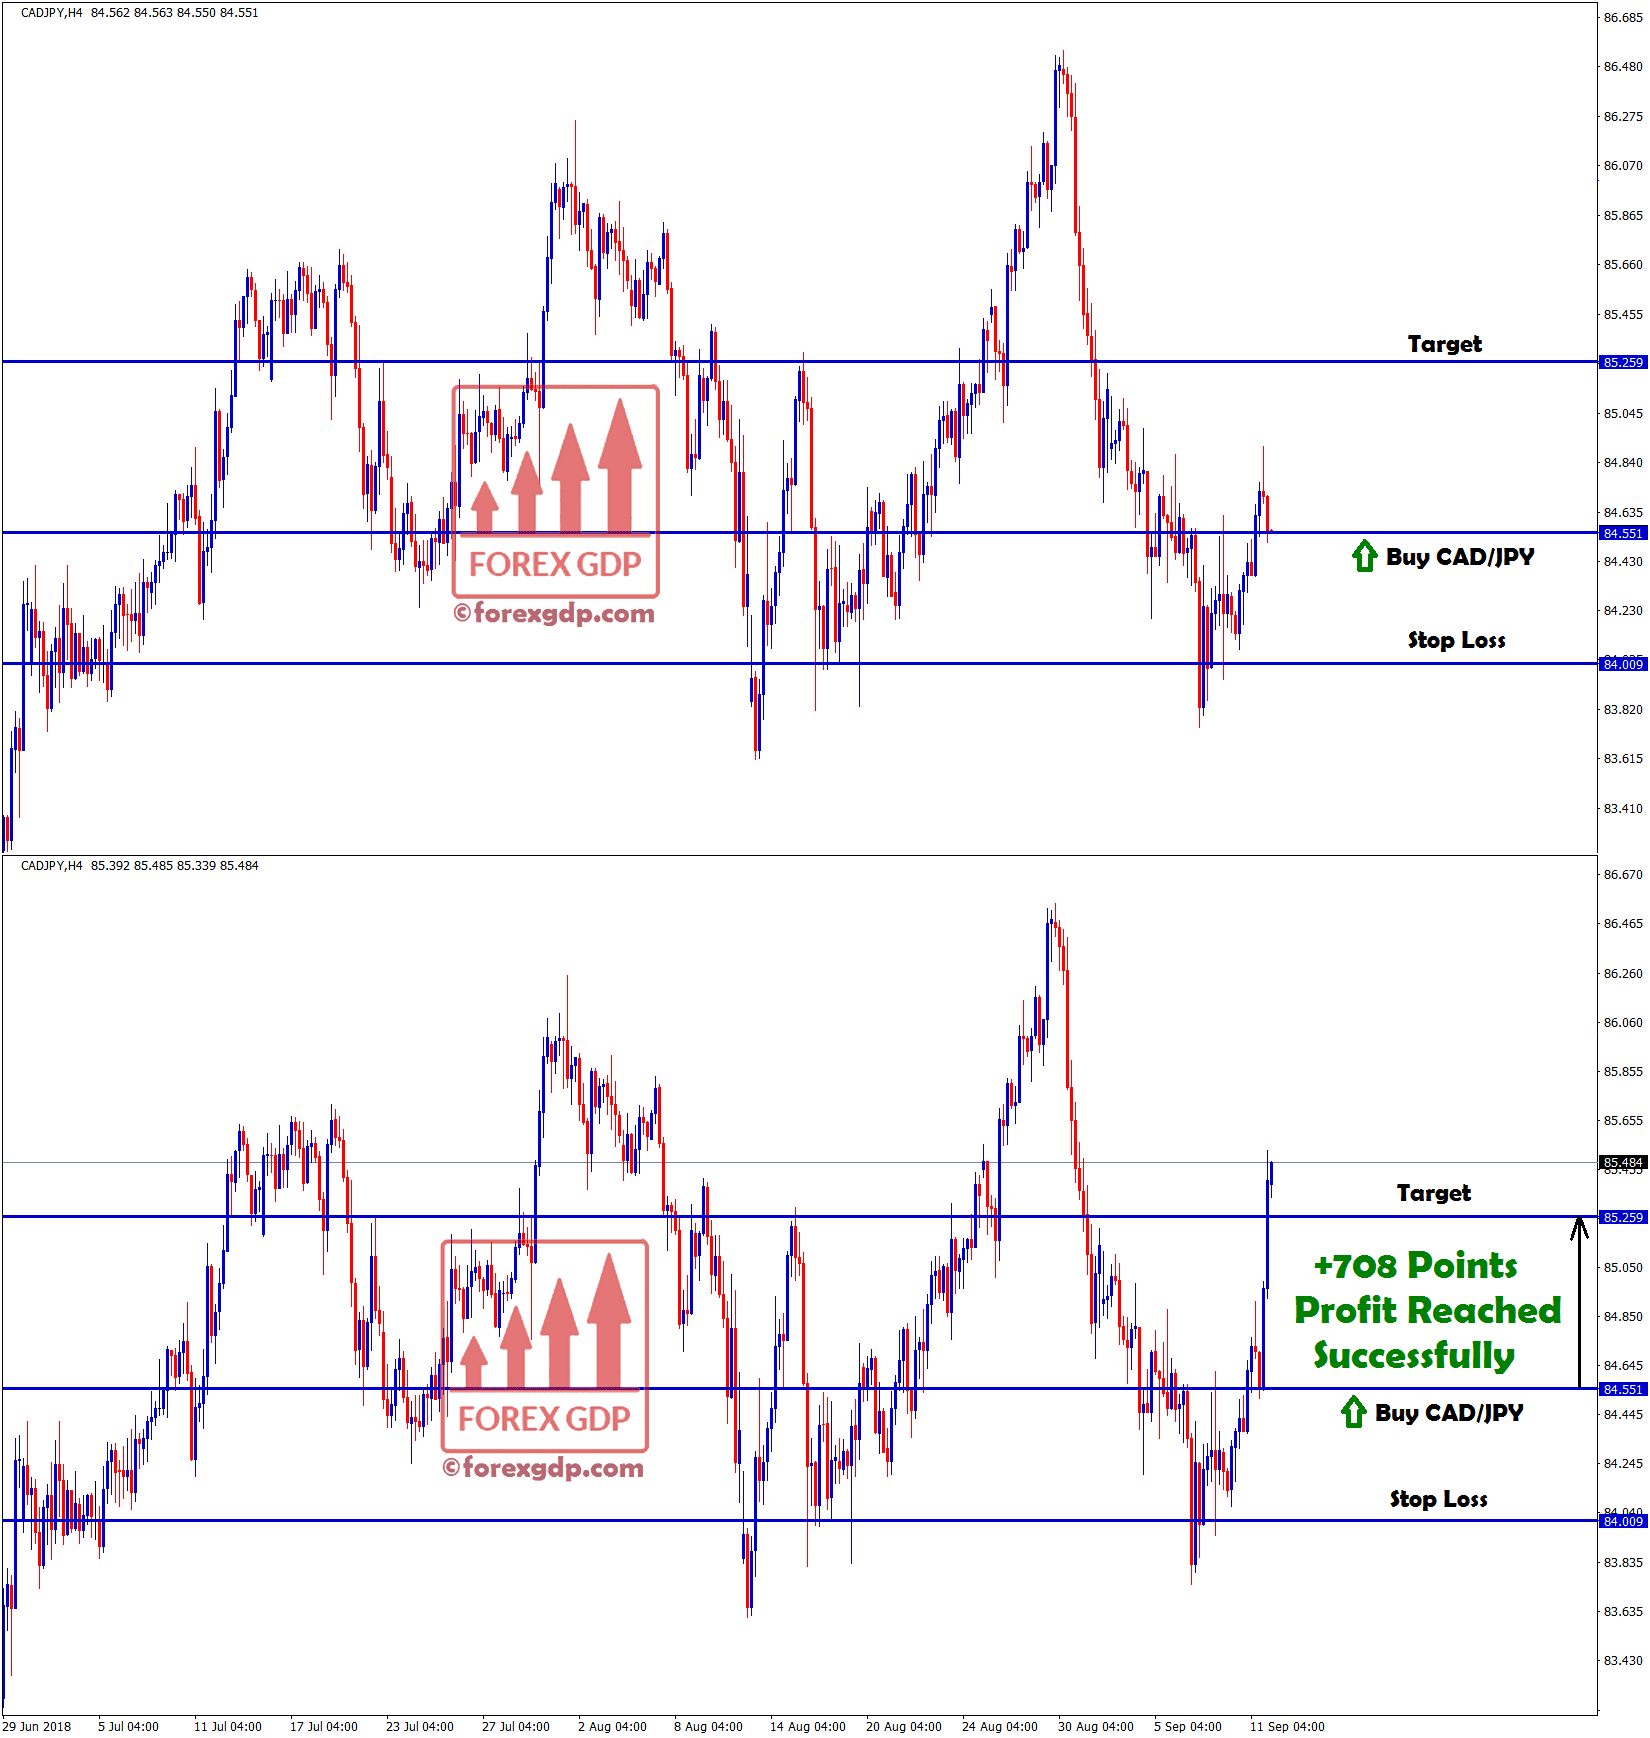 Take profit touched in CAD JPY buy signal